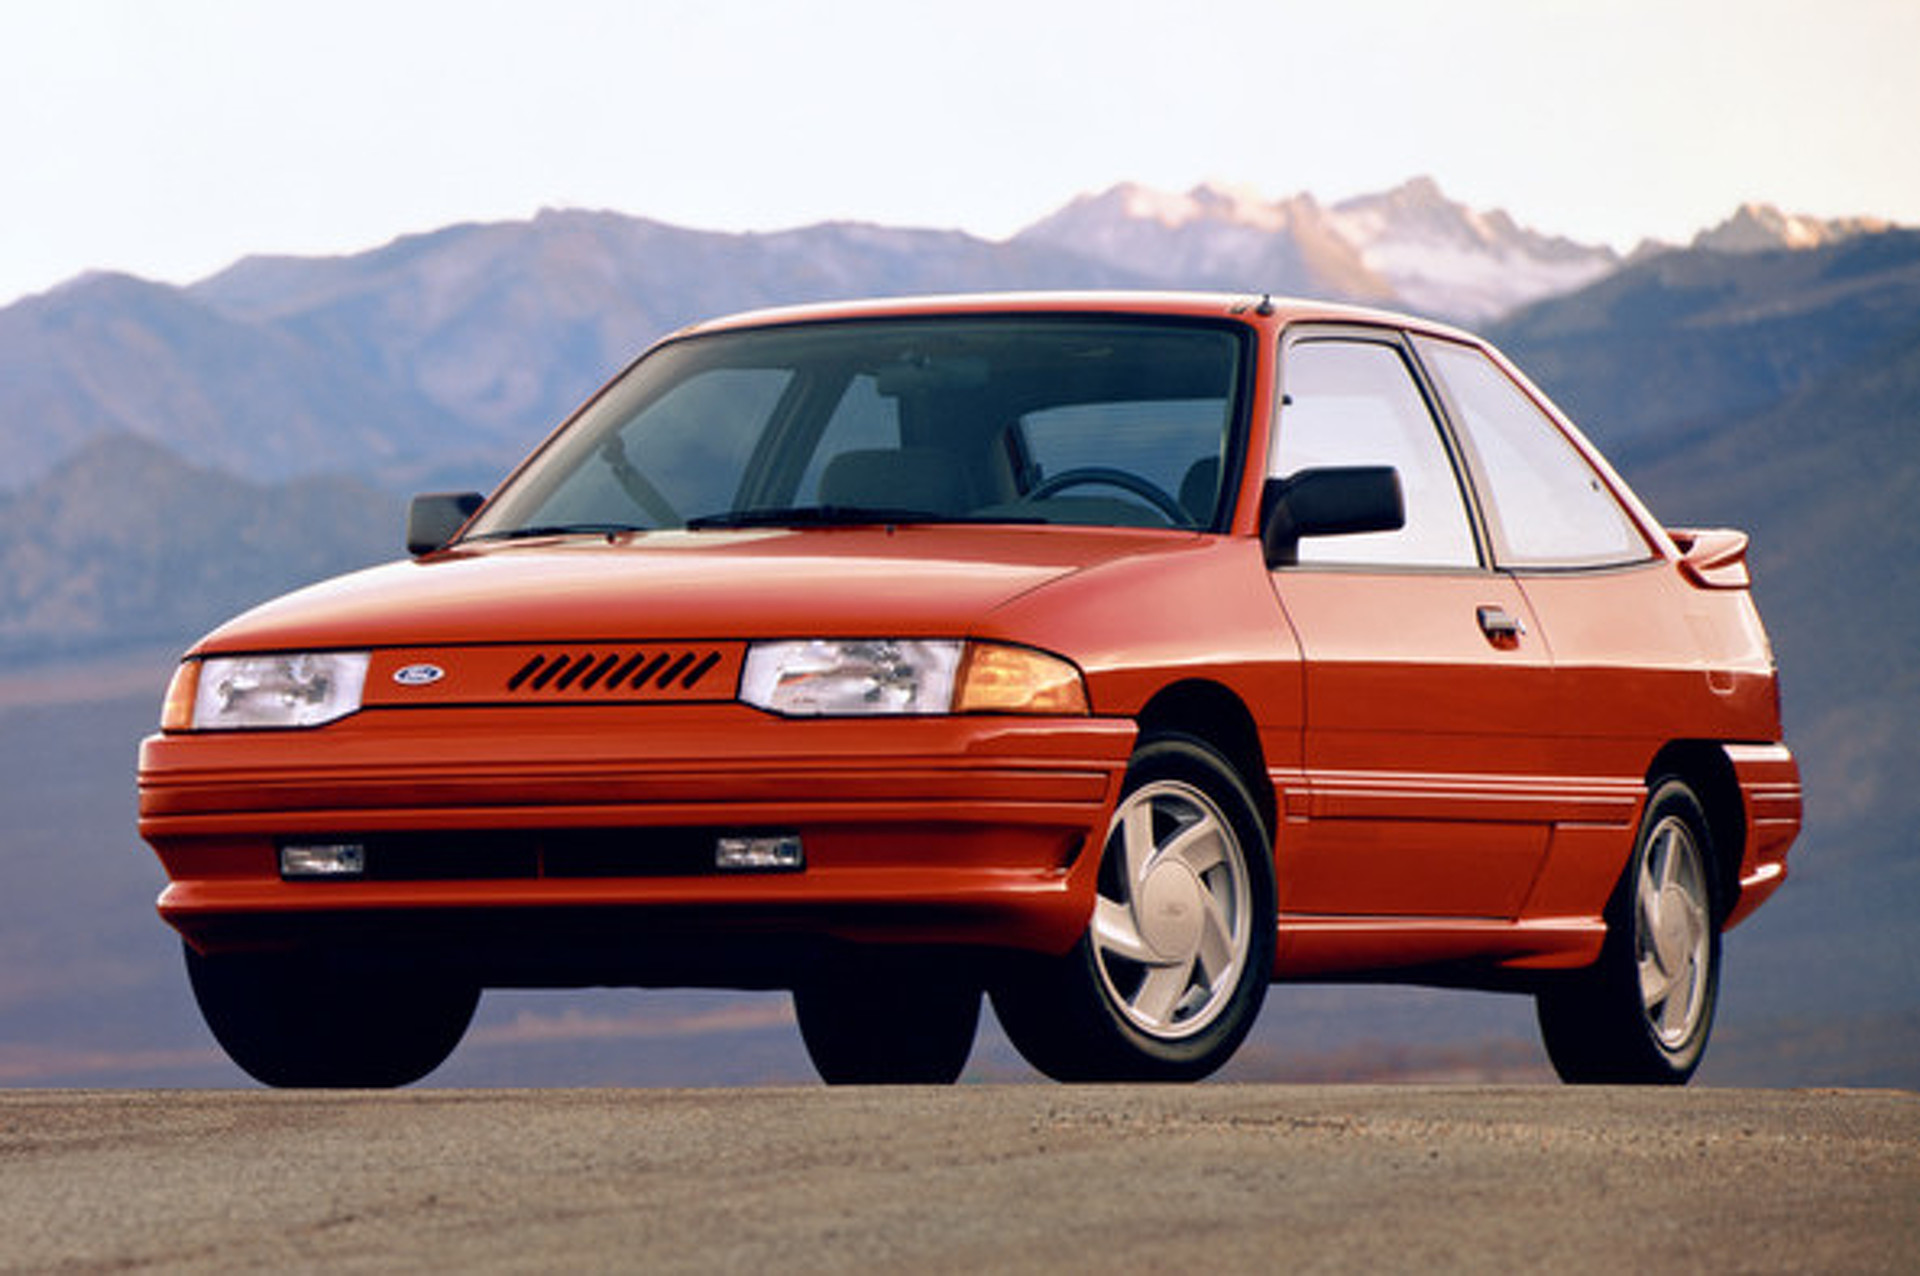 1991 ford escort gt may not have power but is corny beyond its years video